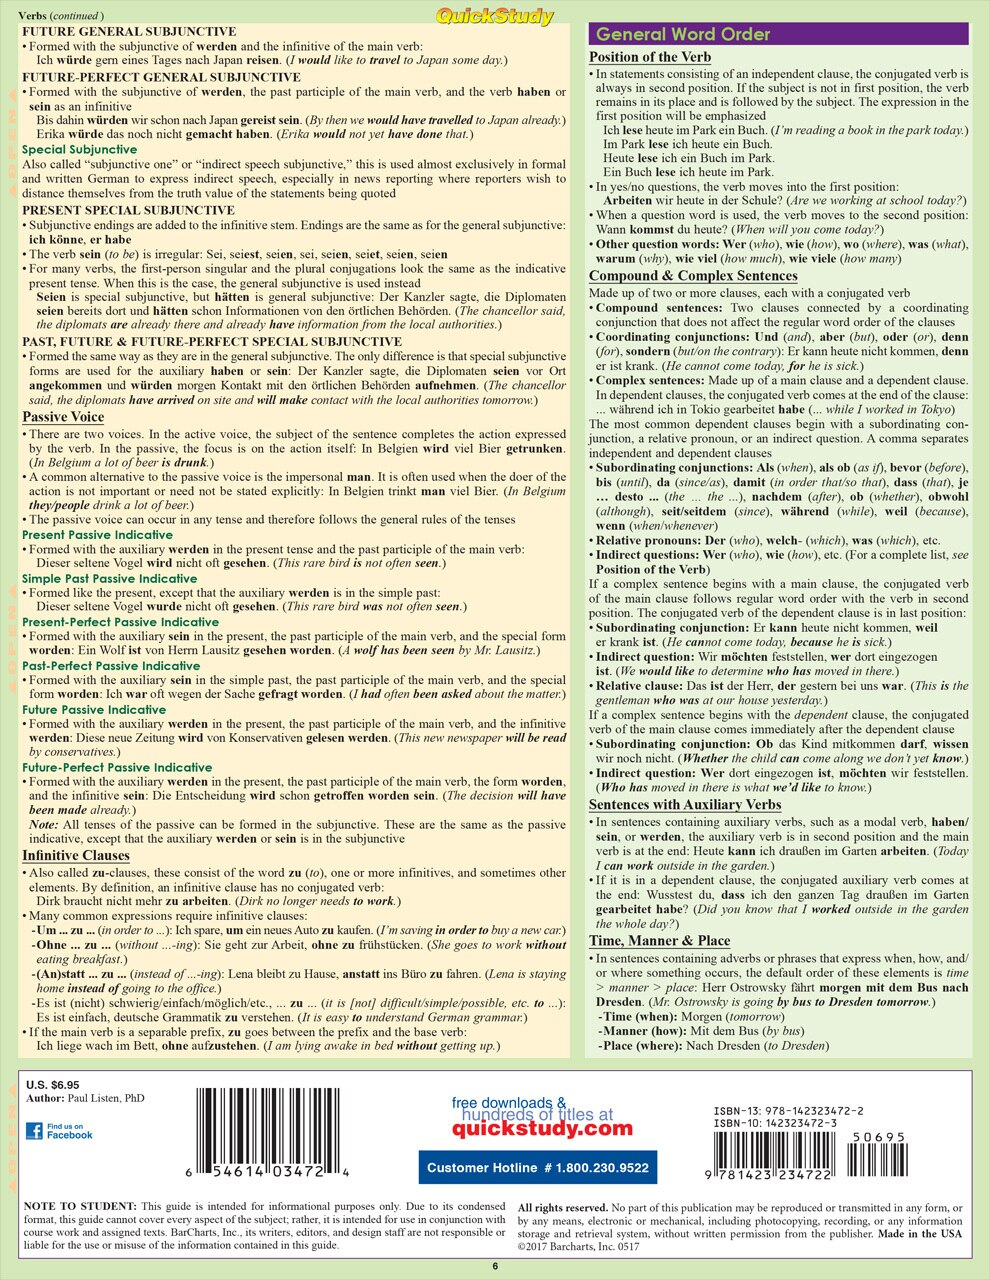 QuickStudy Quick Study German Grammar Laminated Study Guide BarCharts Publishing Foreign Languages Back Image